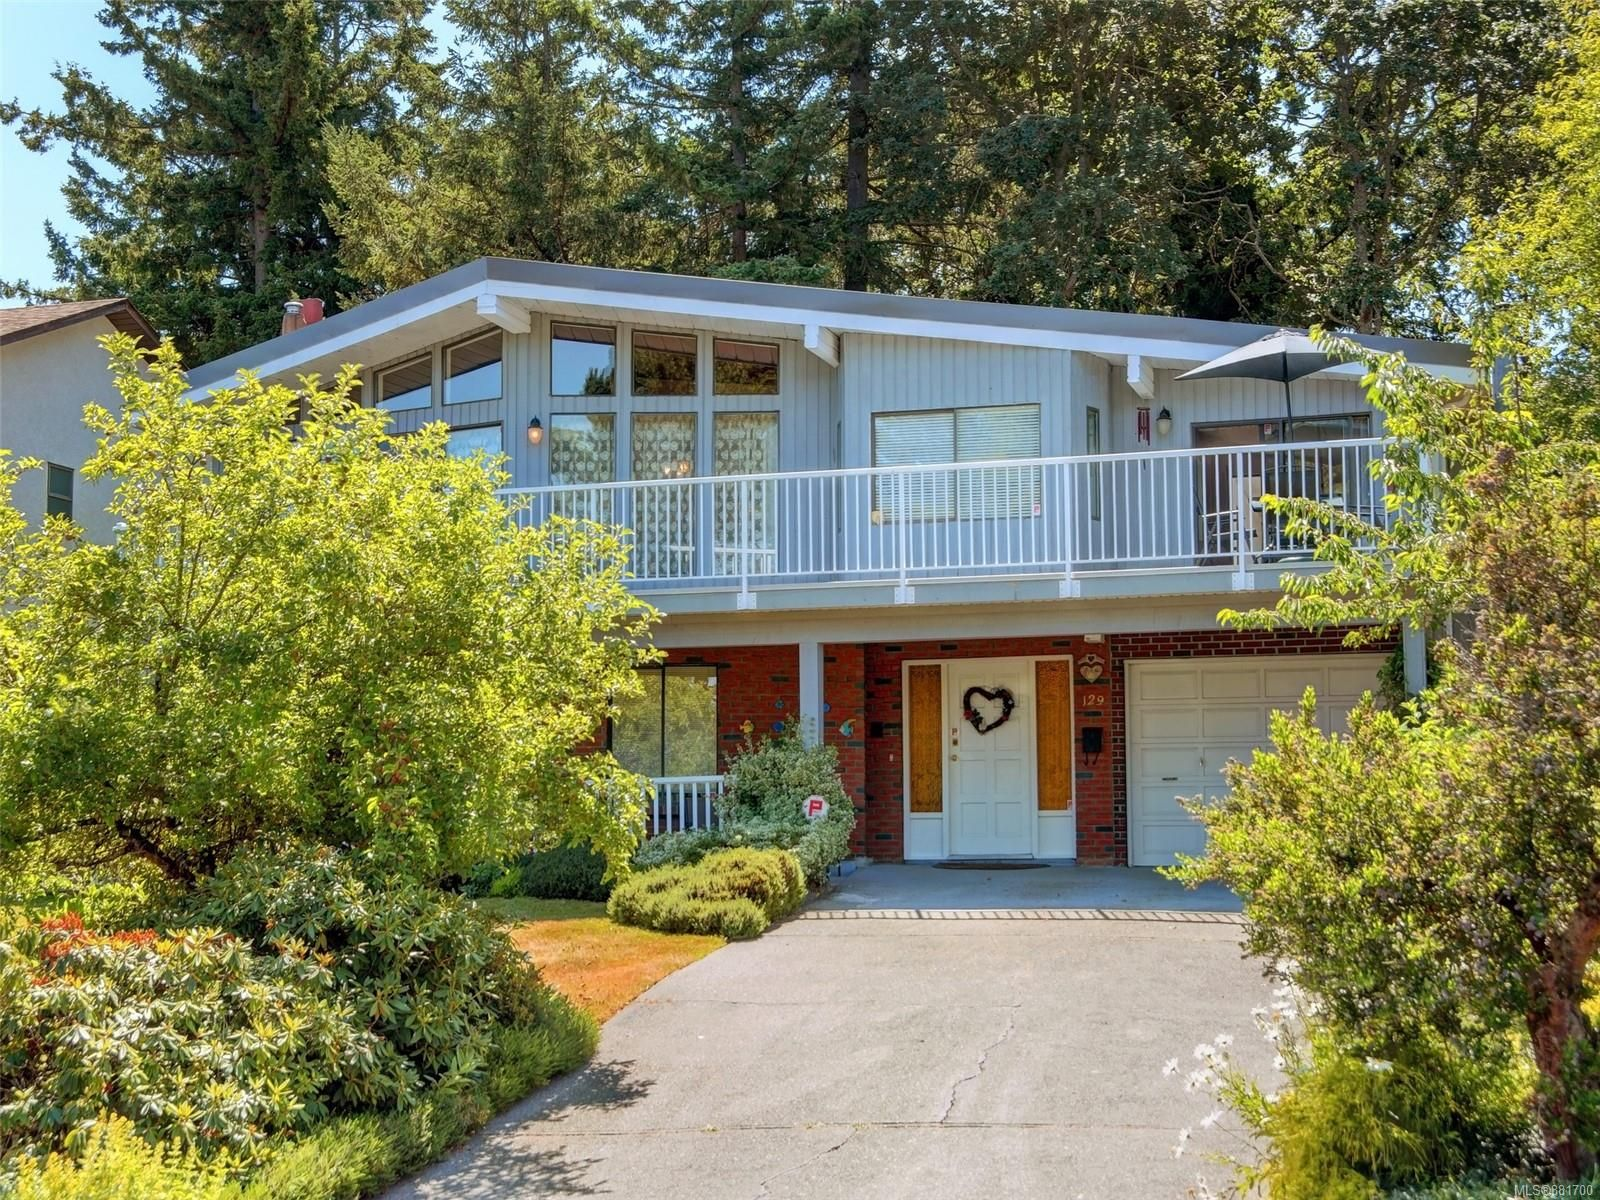 Main Photo: 129 Werra Rd in : VR View Royal House for sale (View Royal)  : MLS®# 881700